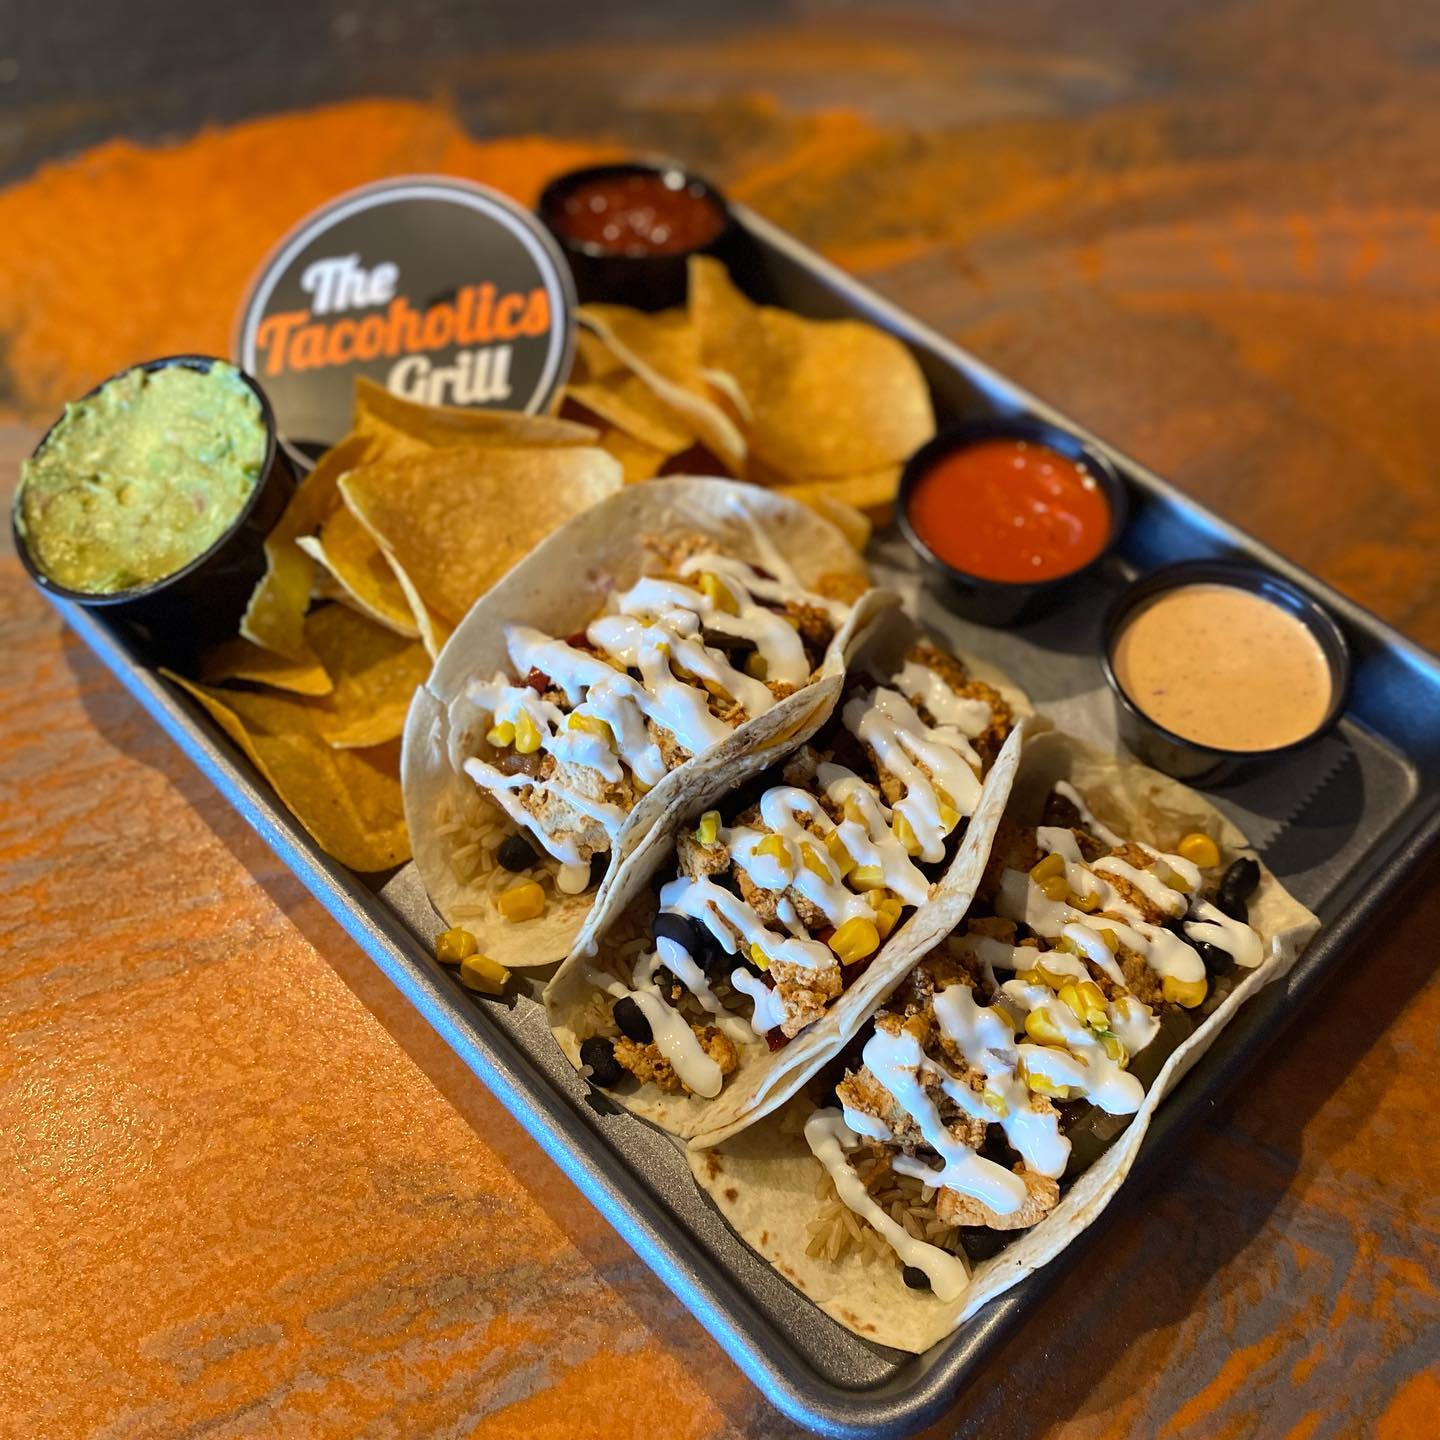 3 tacos with chips and salsa, guac, and queso to dip